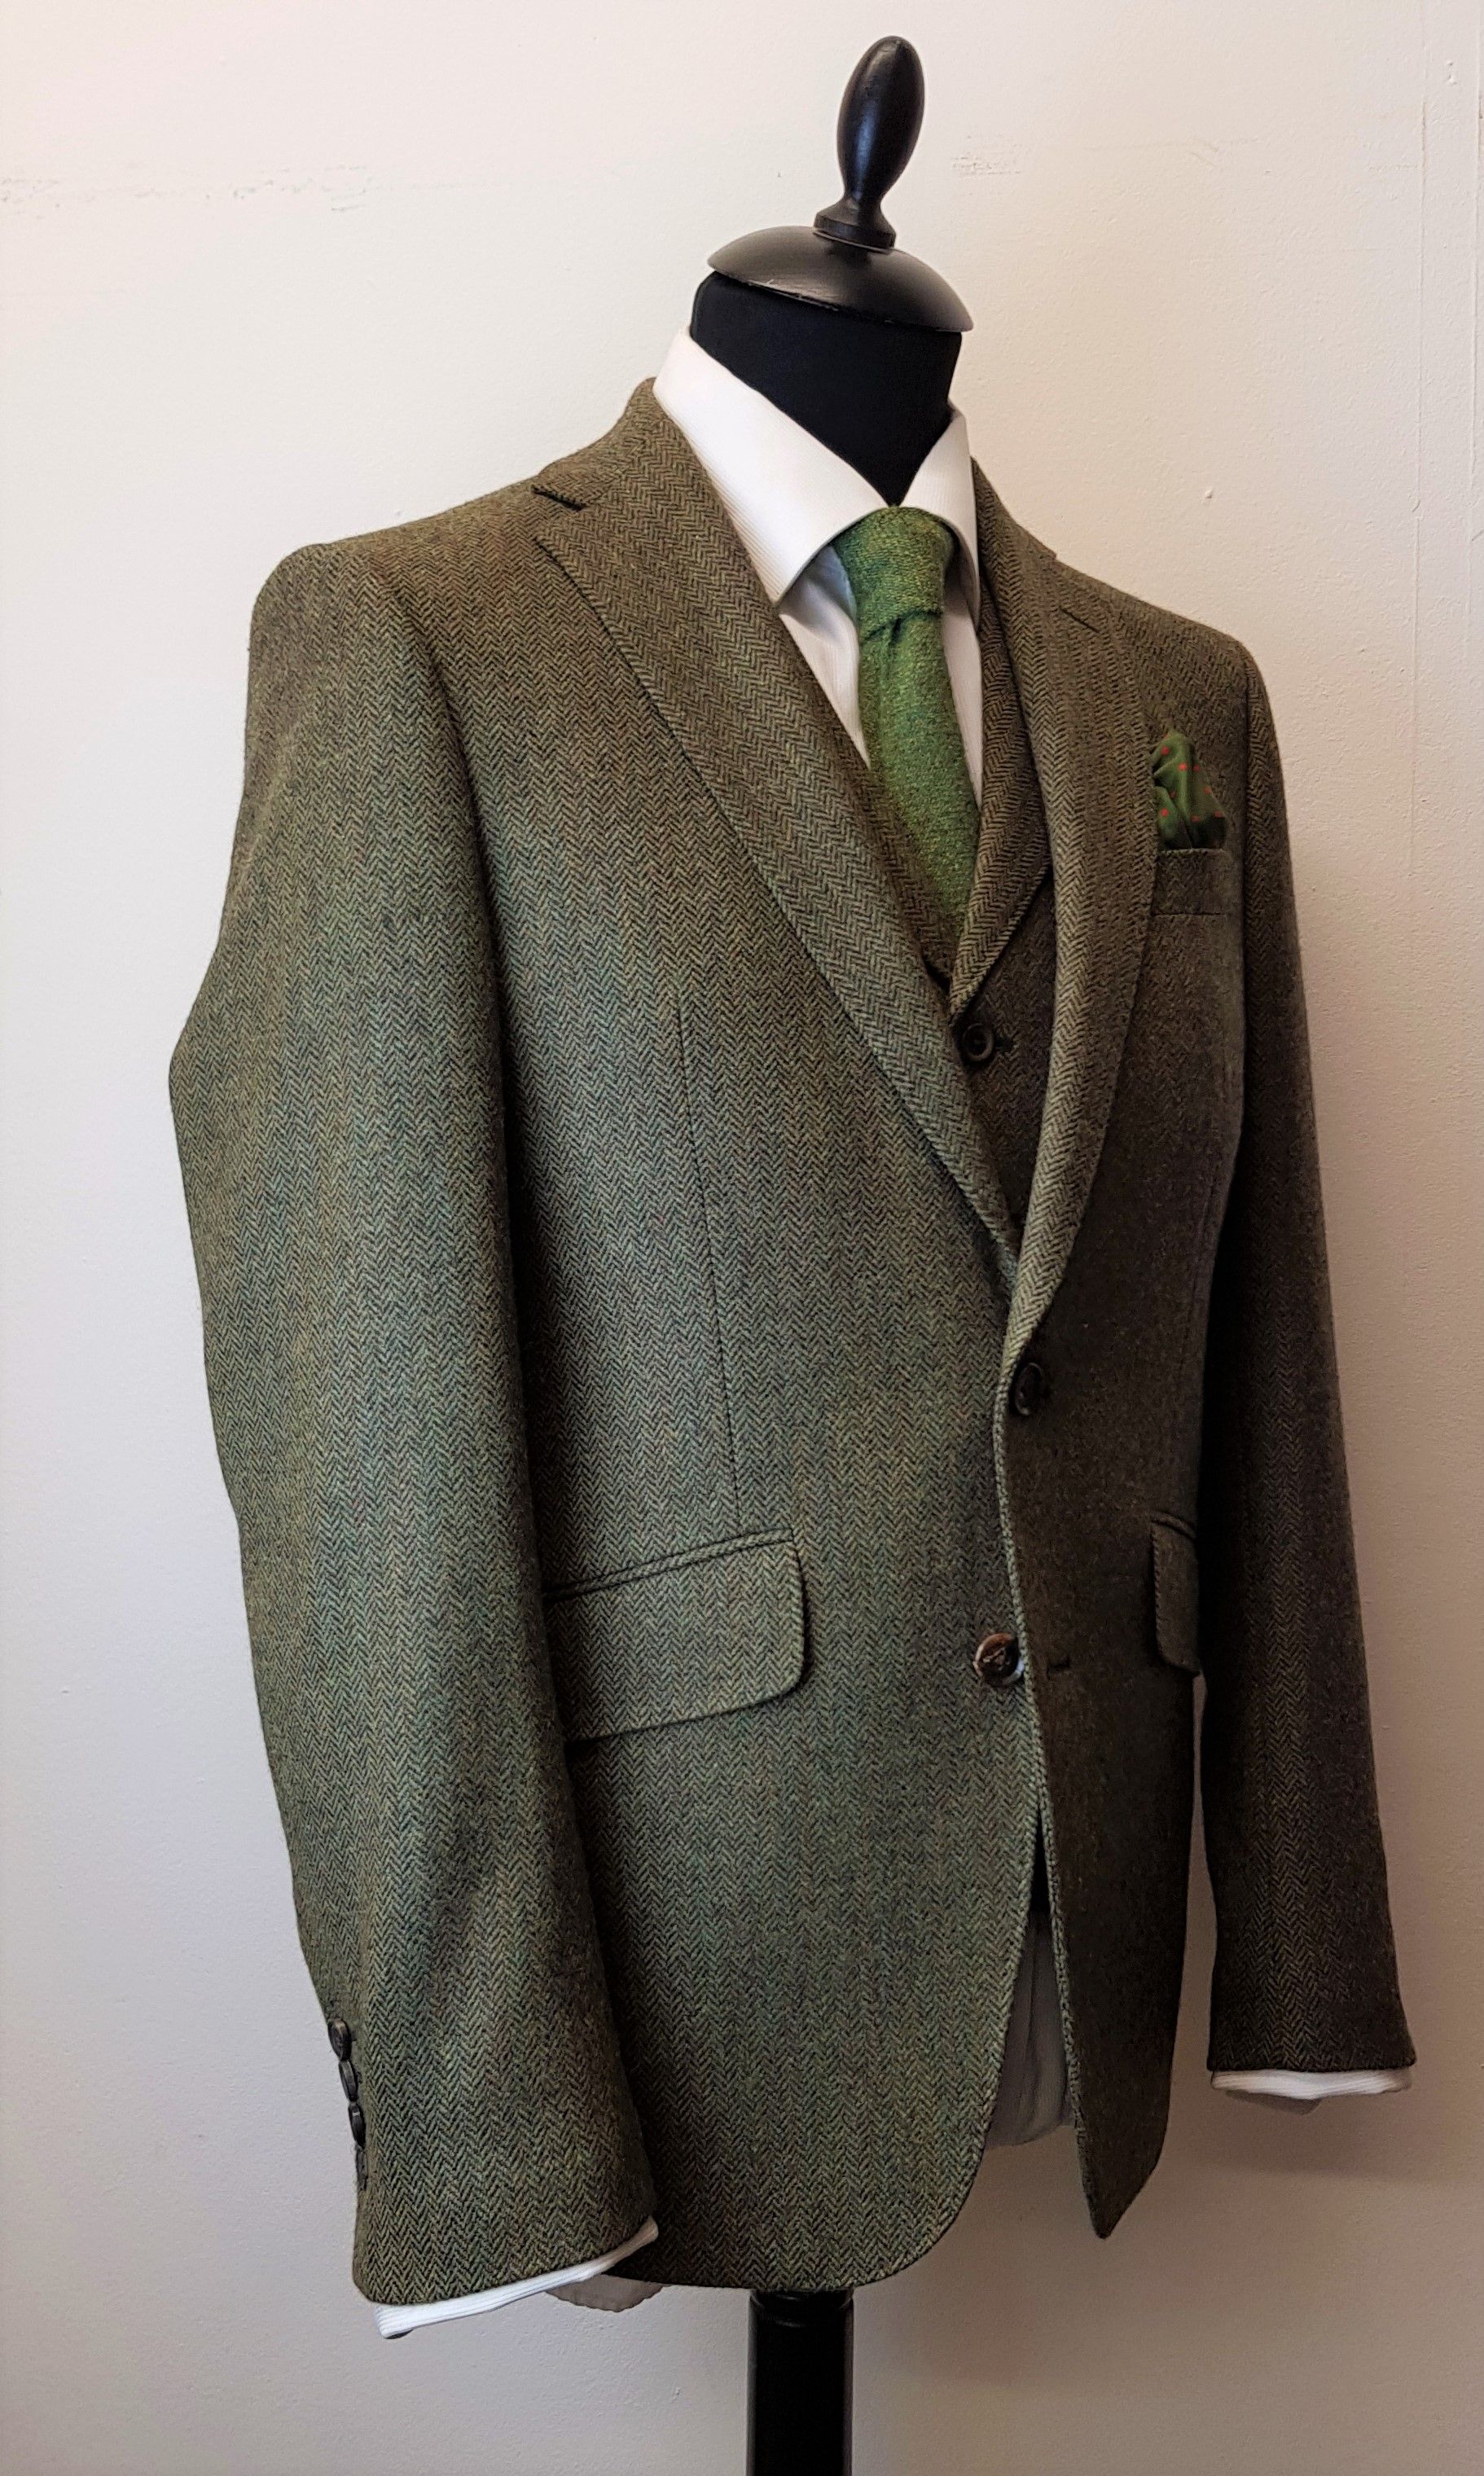 3 piece tweed suit in green herringbone (9).jpg